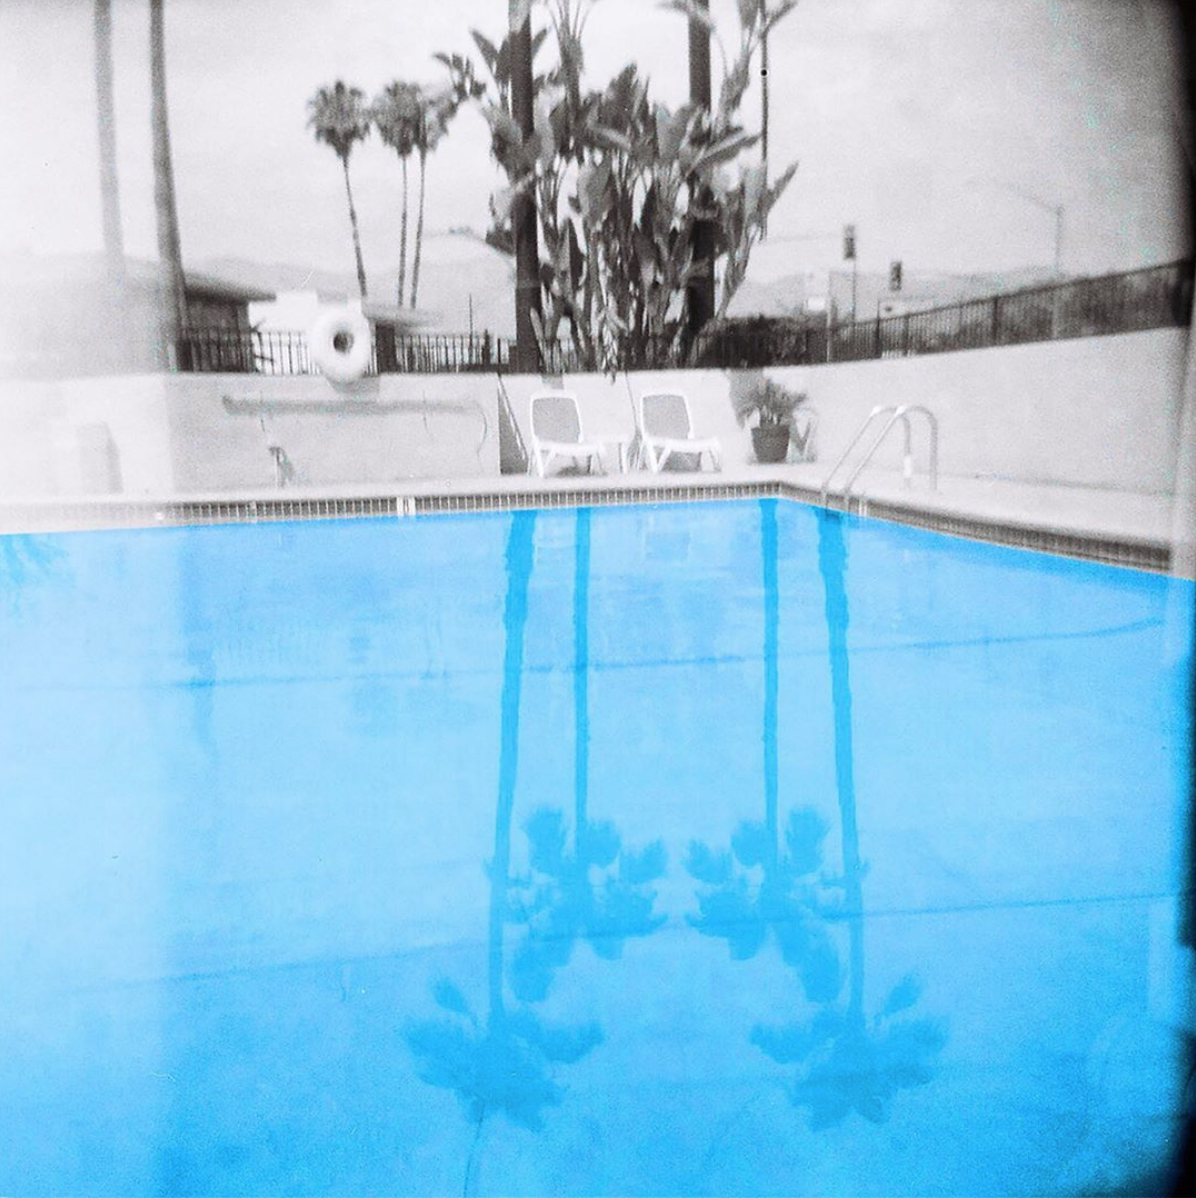 A Photo Series of Palm Trees Shot on 120 Film